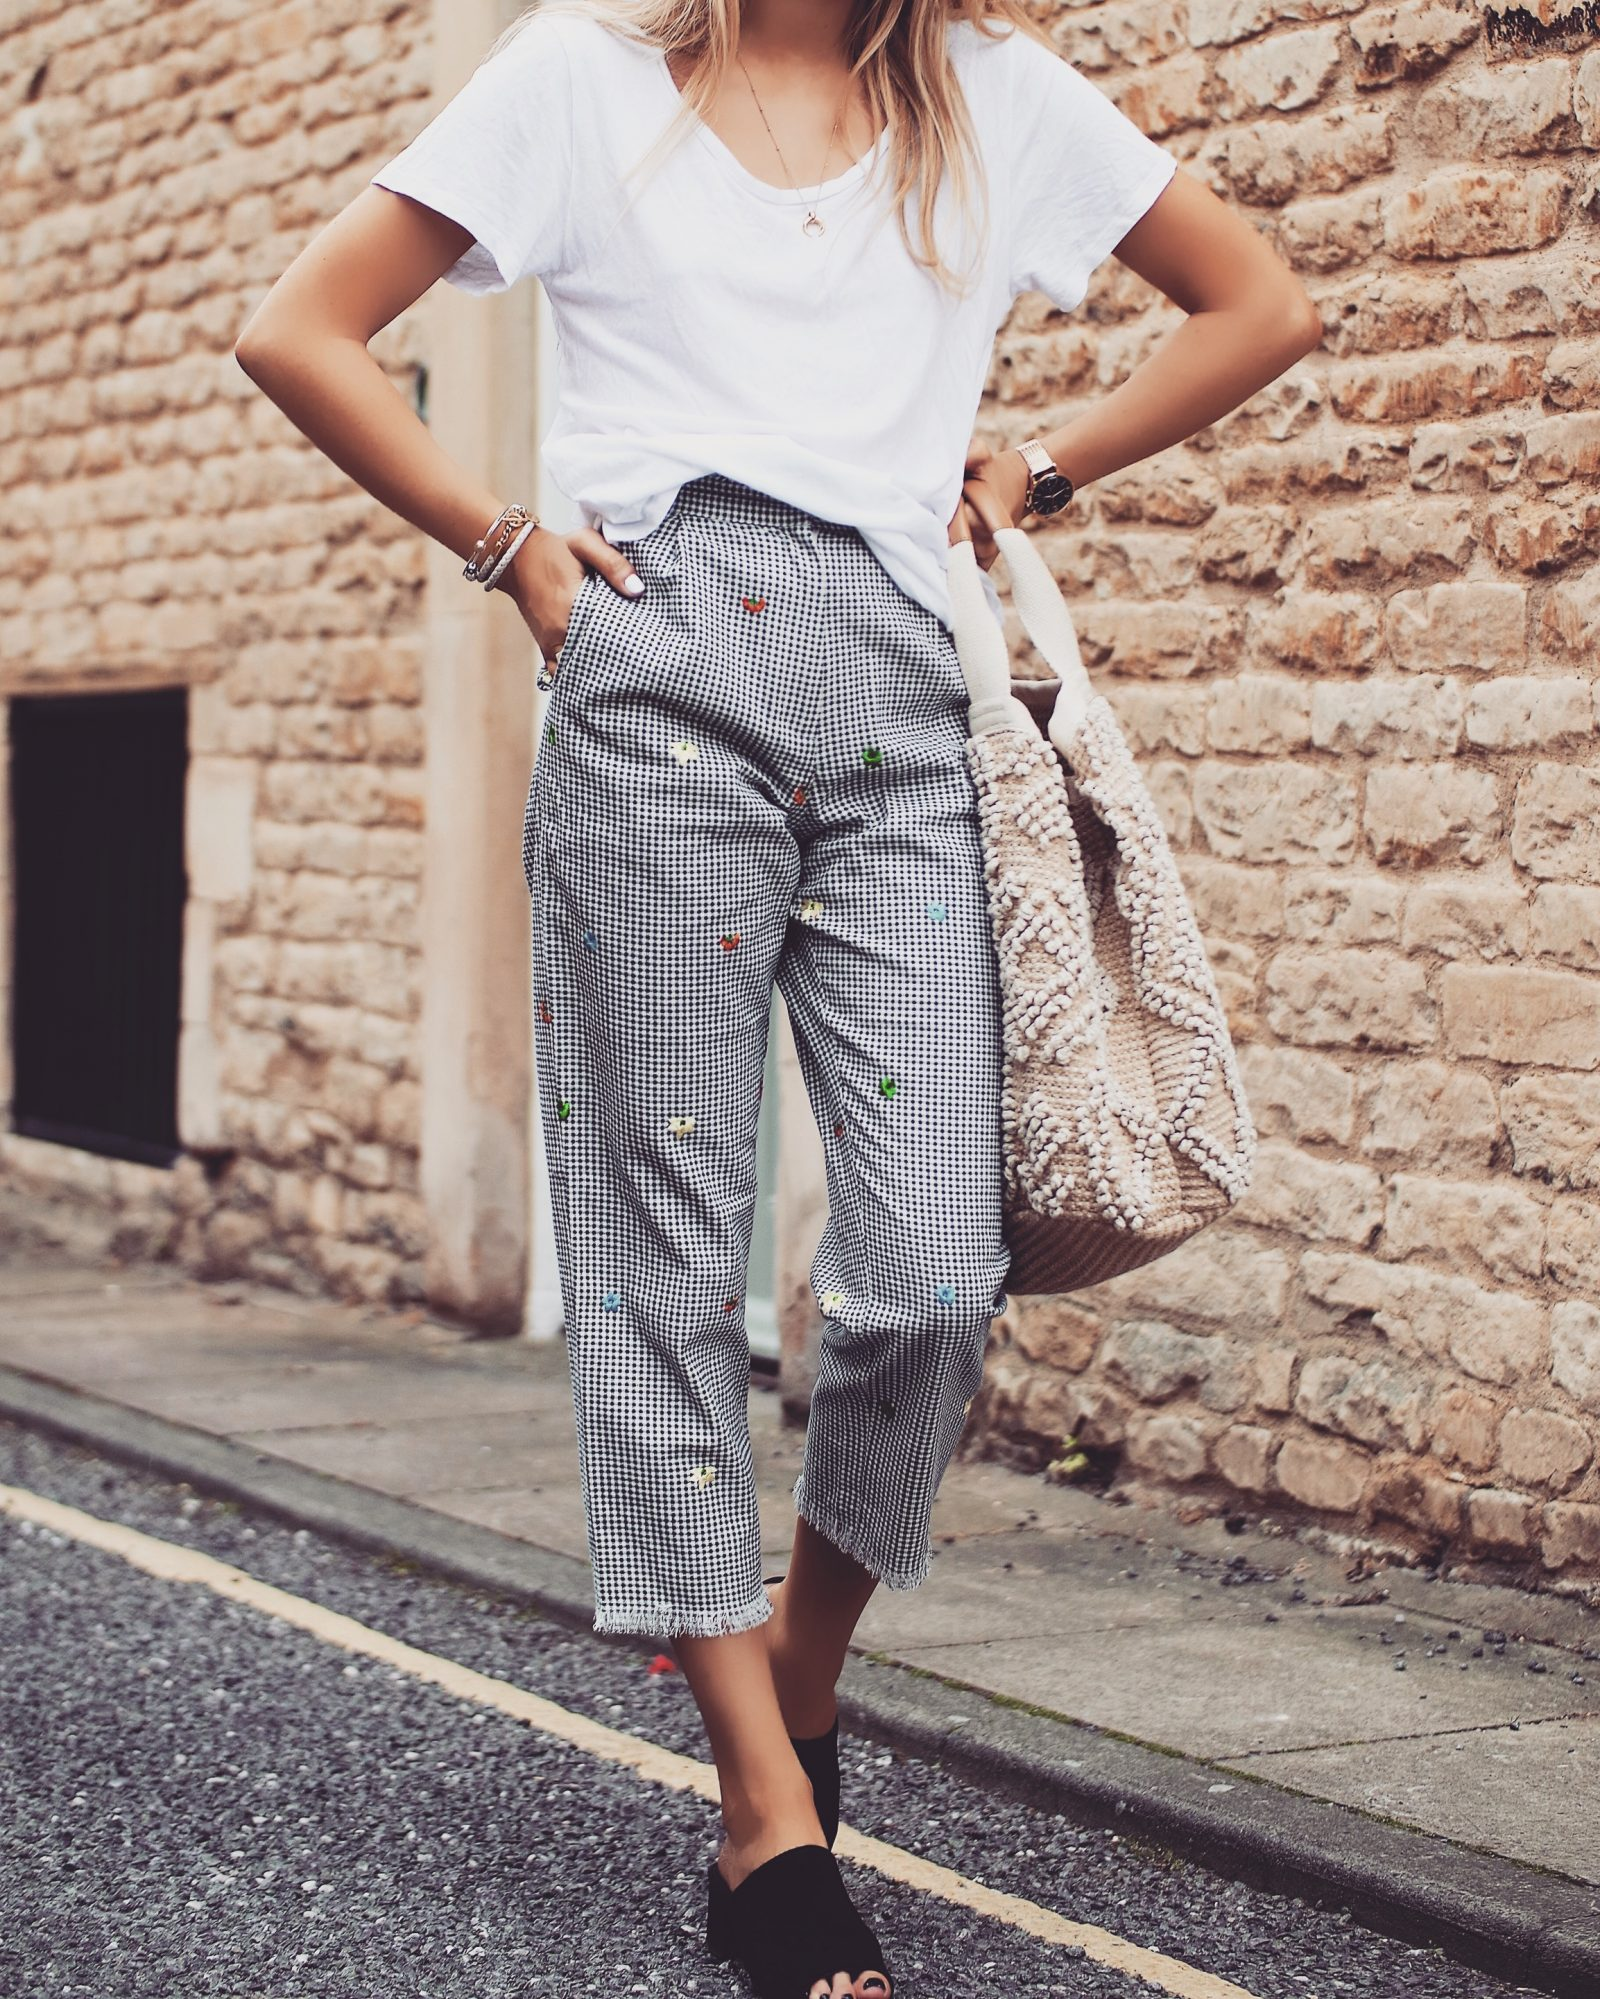 Topshop Gingham Trousers - Non Denim Bottoms